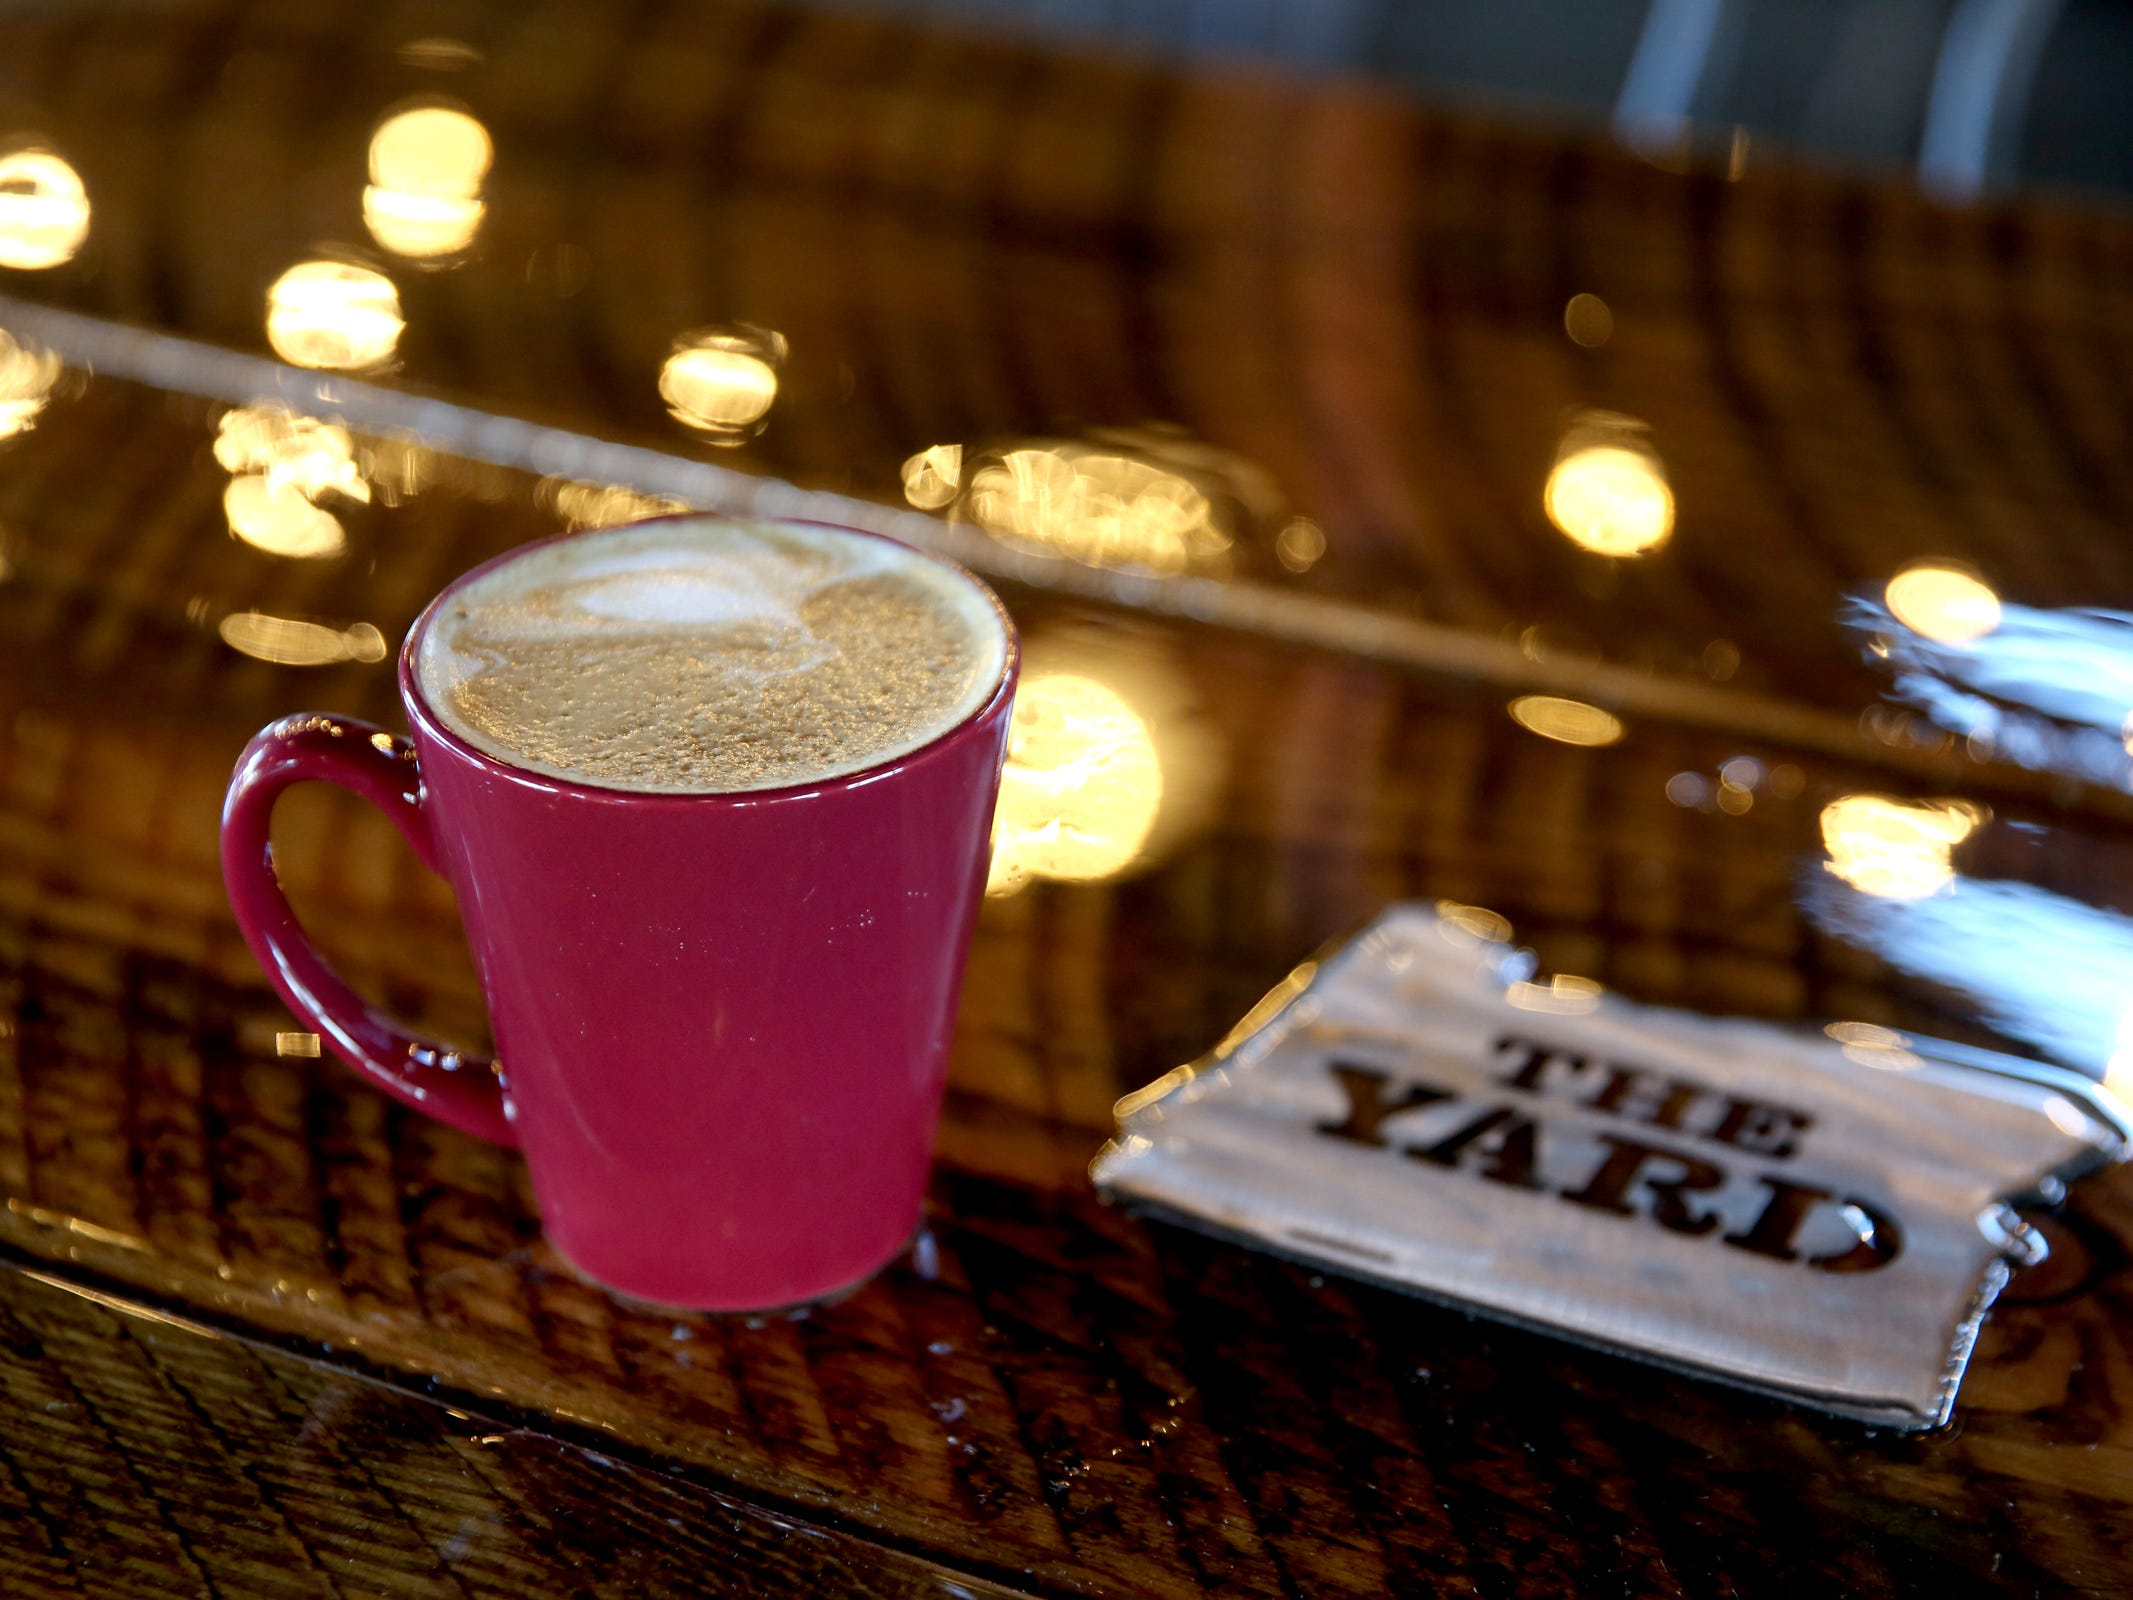 A caramel latte made with sugar-free natural sweeteners and hemp milk at The Yard Food Park in Salem on Wednesday, Dec. 5, 2018. When it opens, The Yard will essentially be part coffee shop, part bar, part event space, and part food truck food court.